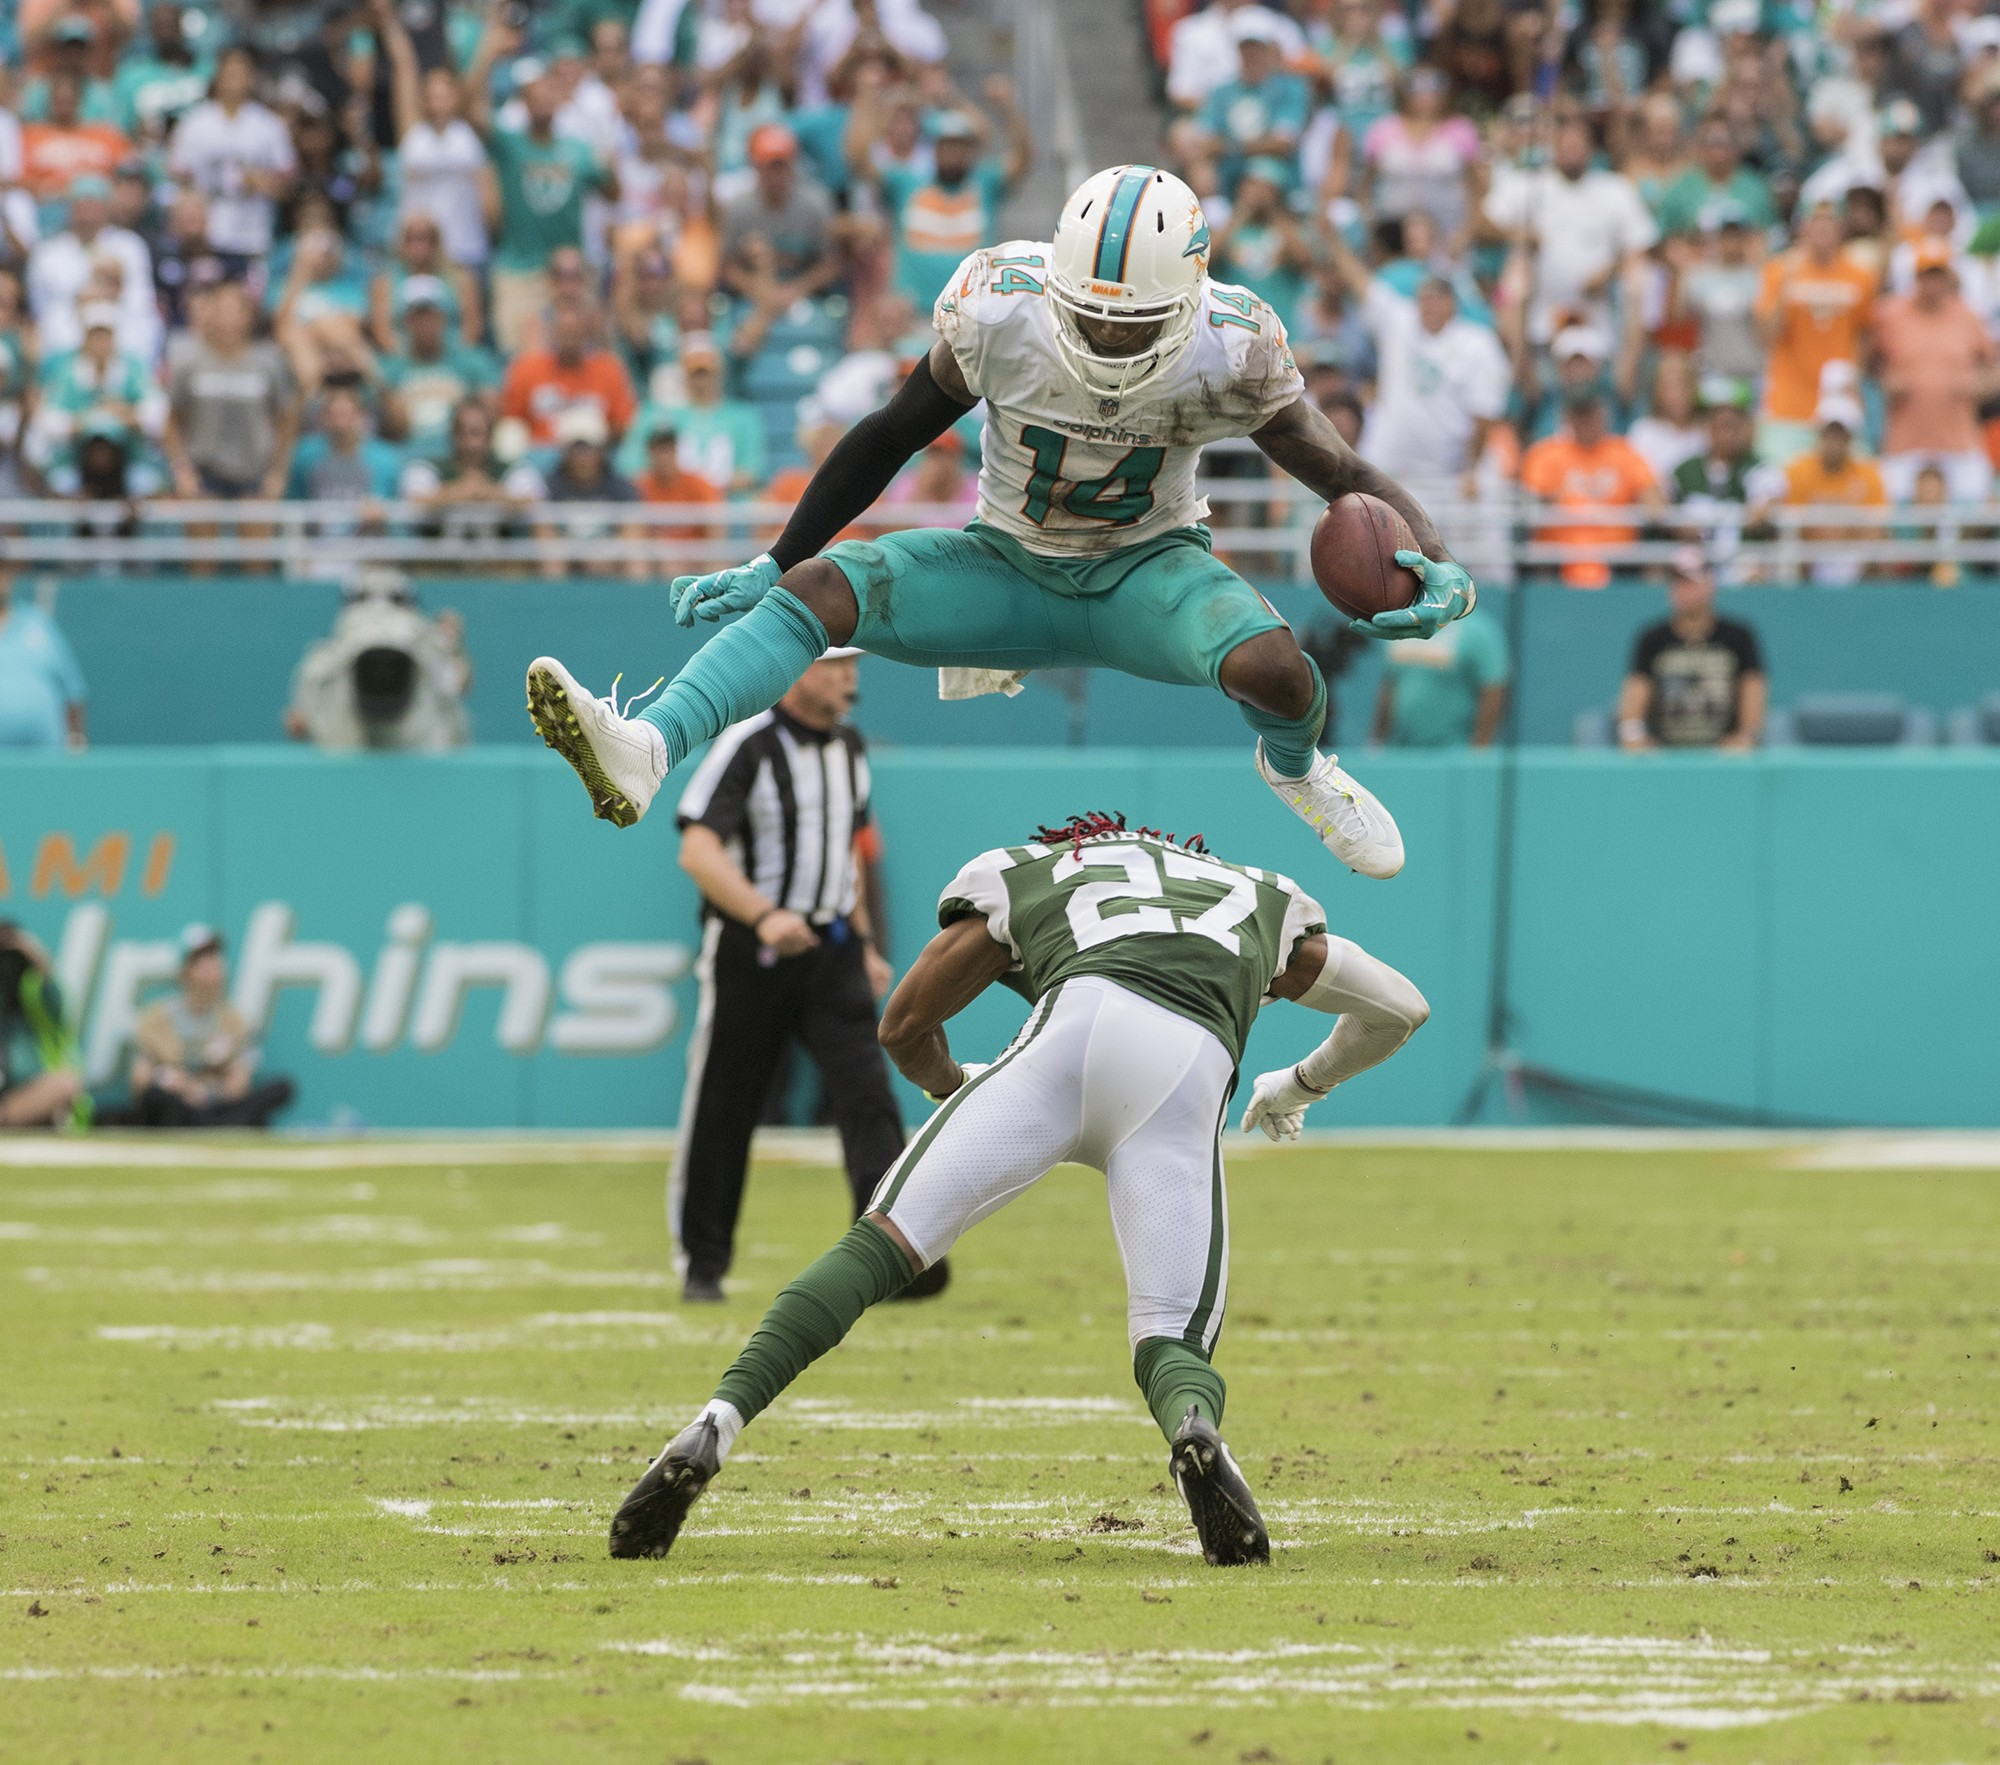 Miami Dolphins wide receiver Jarvis Landry (14) leaps over New York Jets cornerback Darryl Roberts (27) during 2nd half play of an NFL football game on Sunday, Oct. 22, 2017, in Miami Gardens, Fla. The Miami Dolphins went on to win 28-31.(Donald Edgar/El Latino Digital)